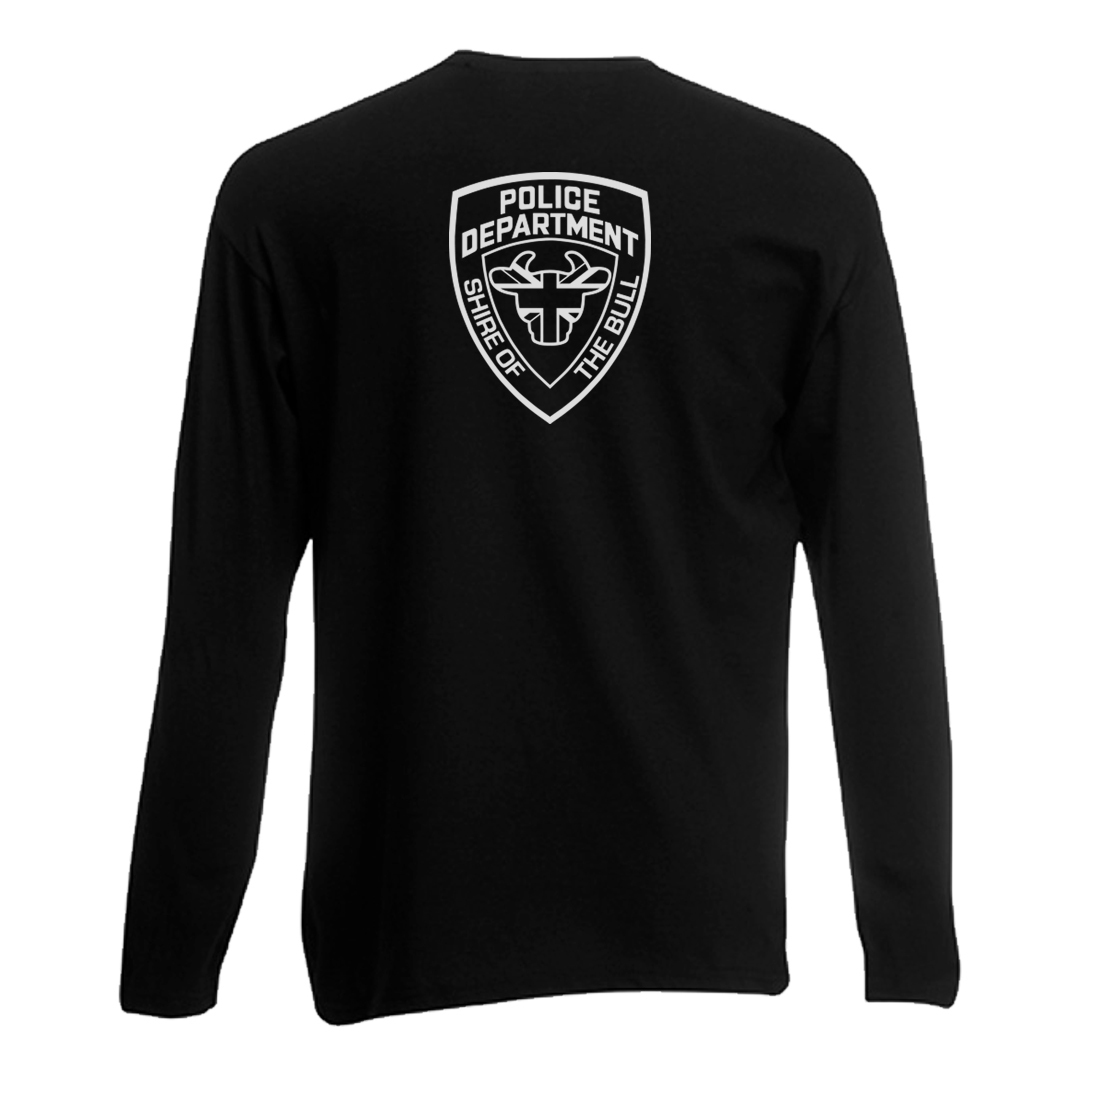 Project Shield: Long Sleeve Crew Neck ShieldCREWNeck